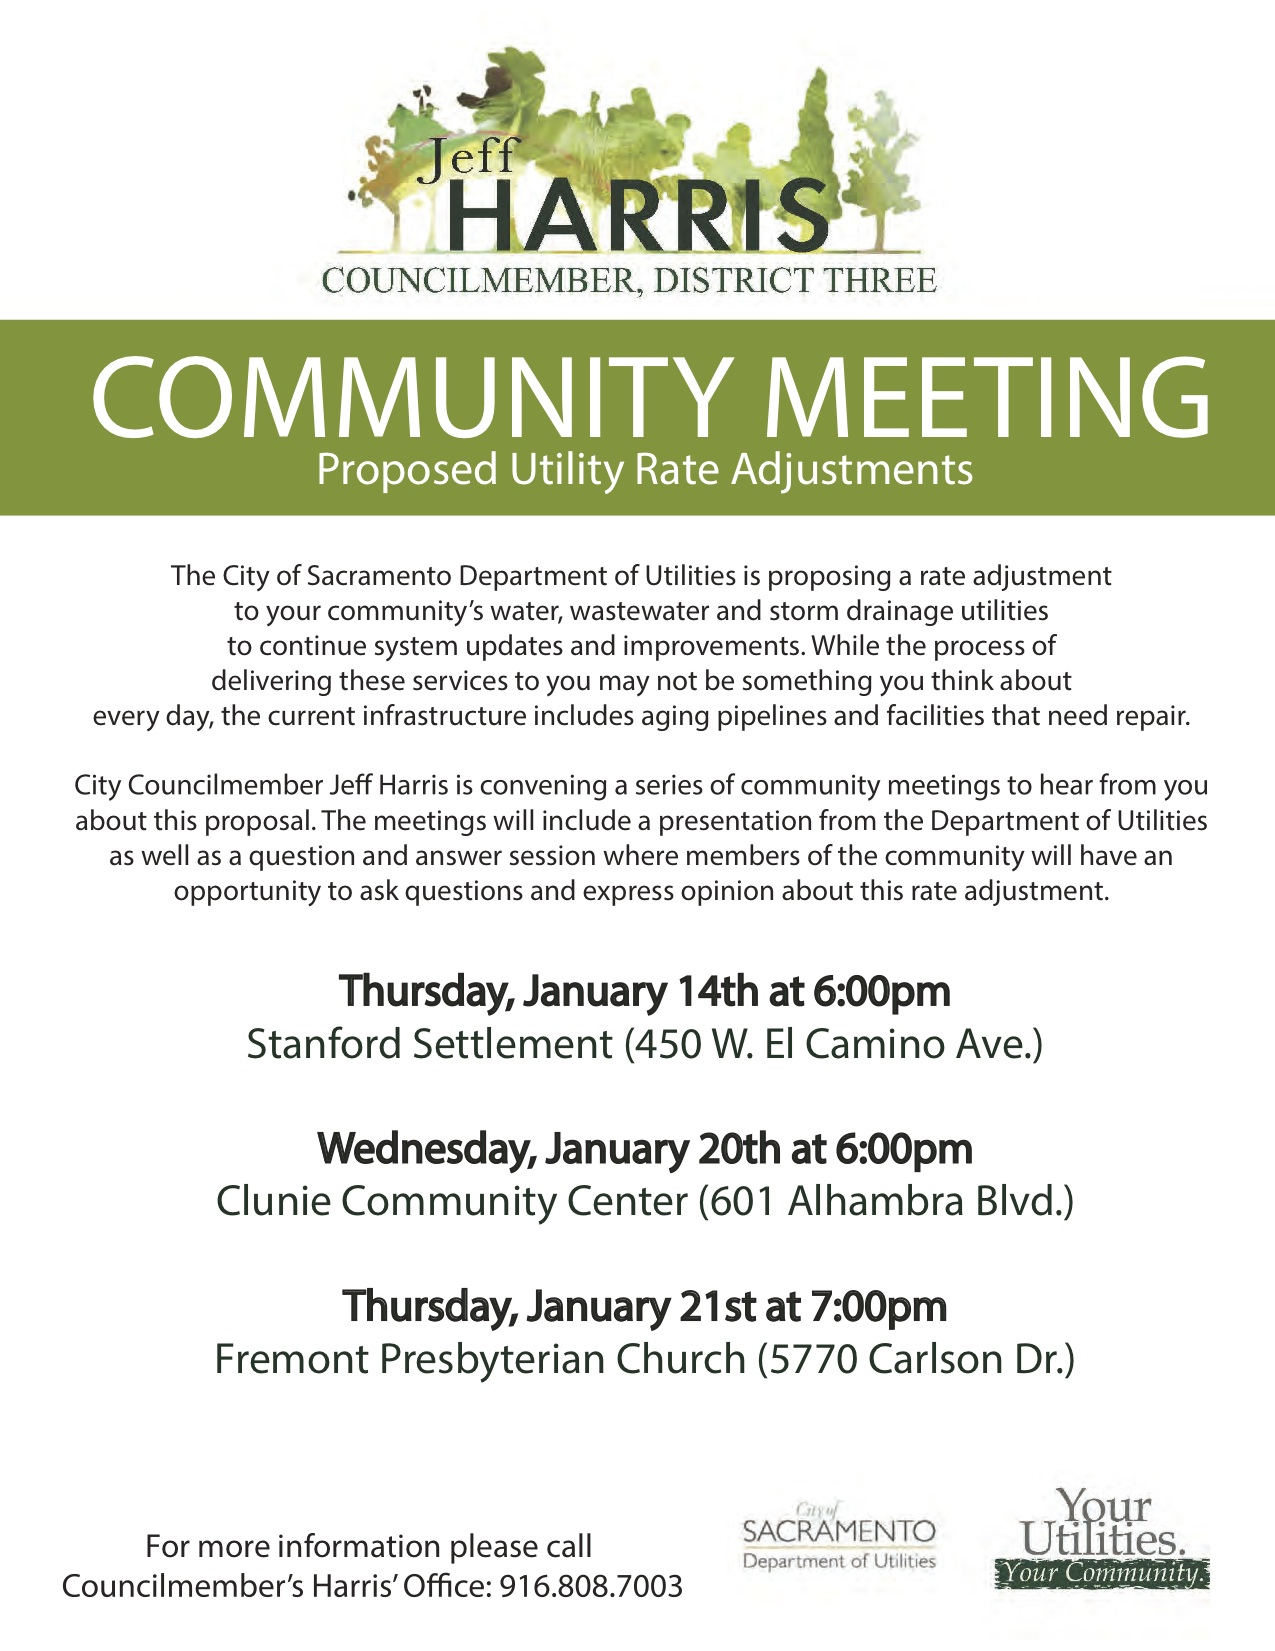 Utility Rate Hike Proposed!! Come To The Clunie Meeting To Voice Your Opinion